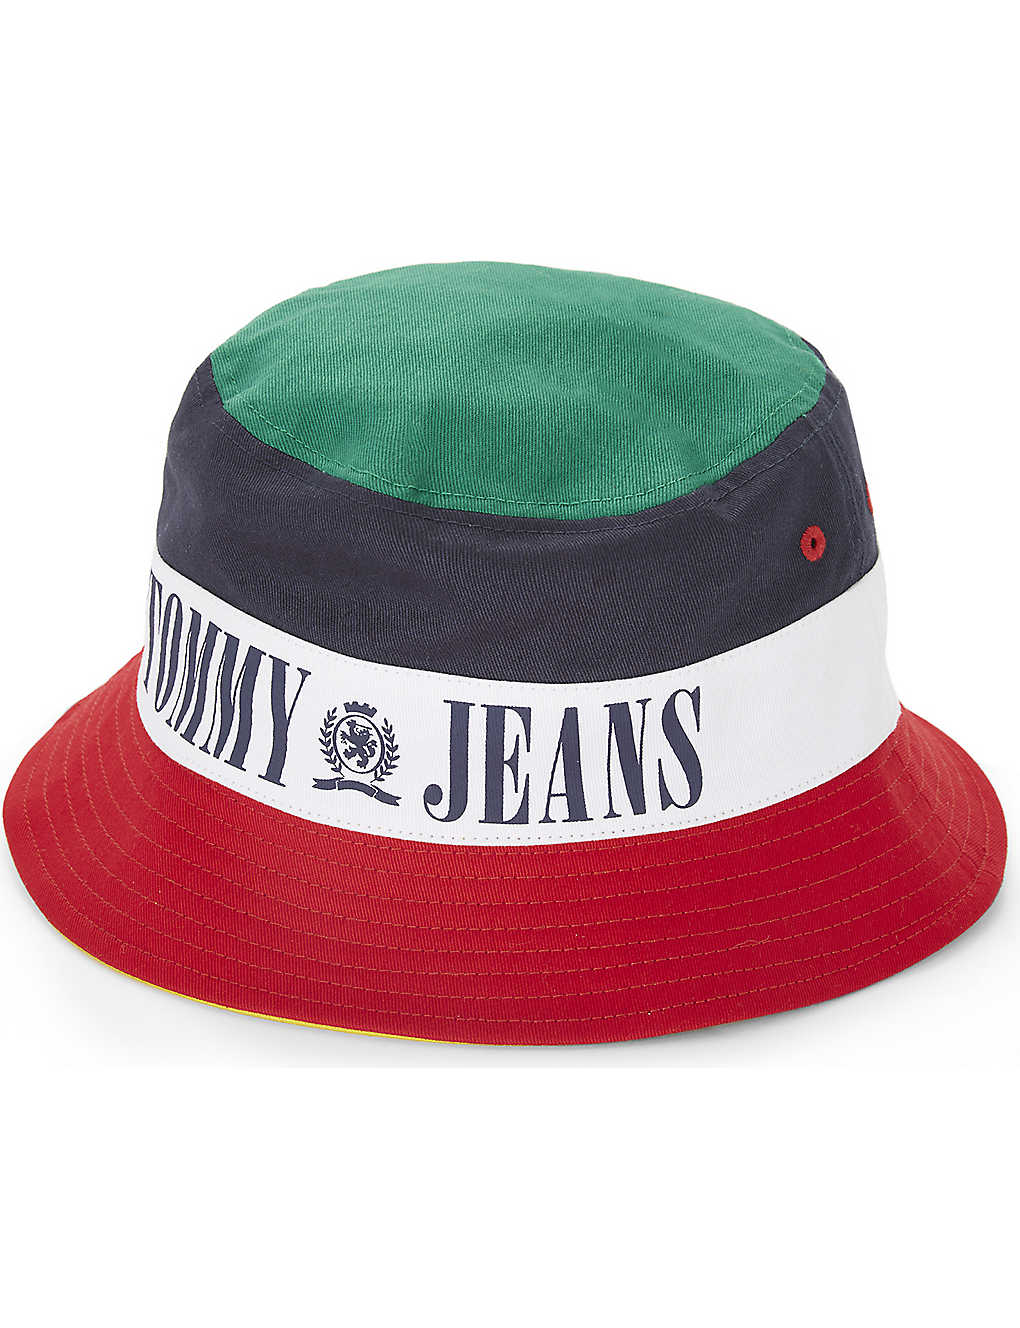 TOMMY JEANS -  90s cotton bucket hat  12c53f93bee